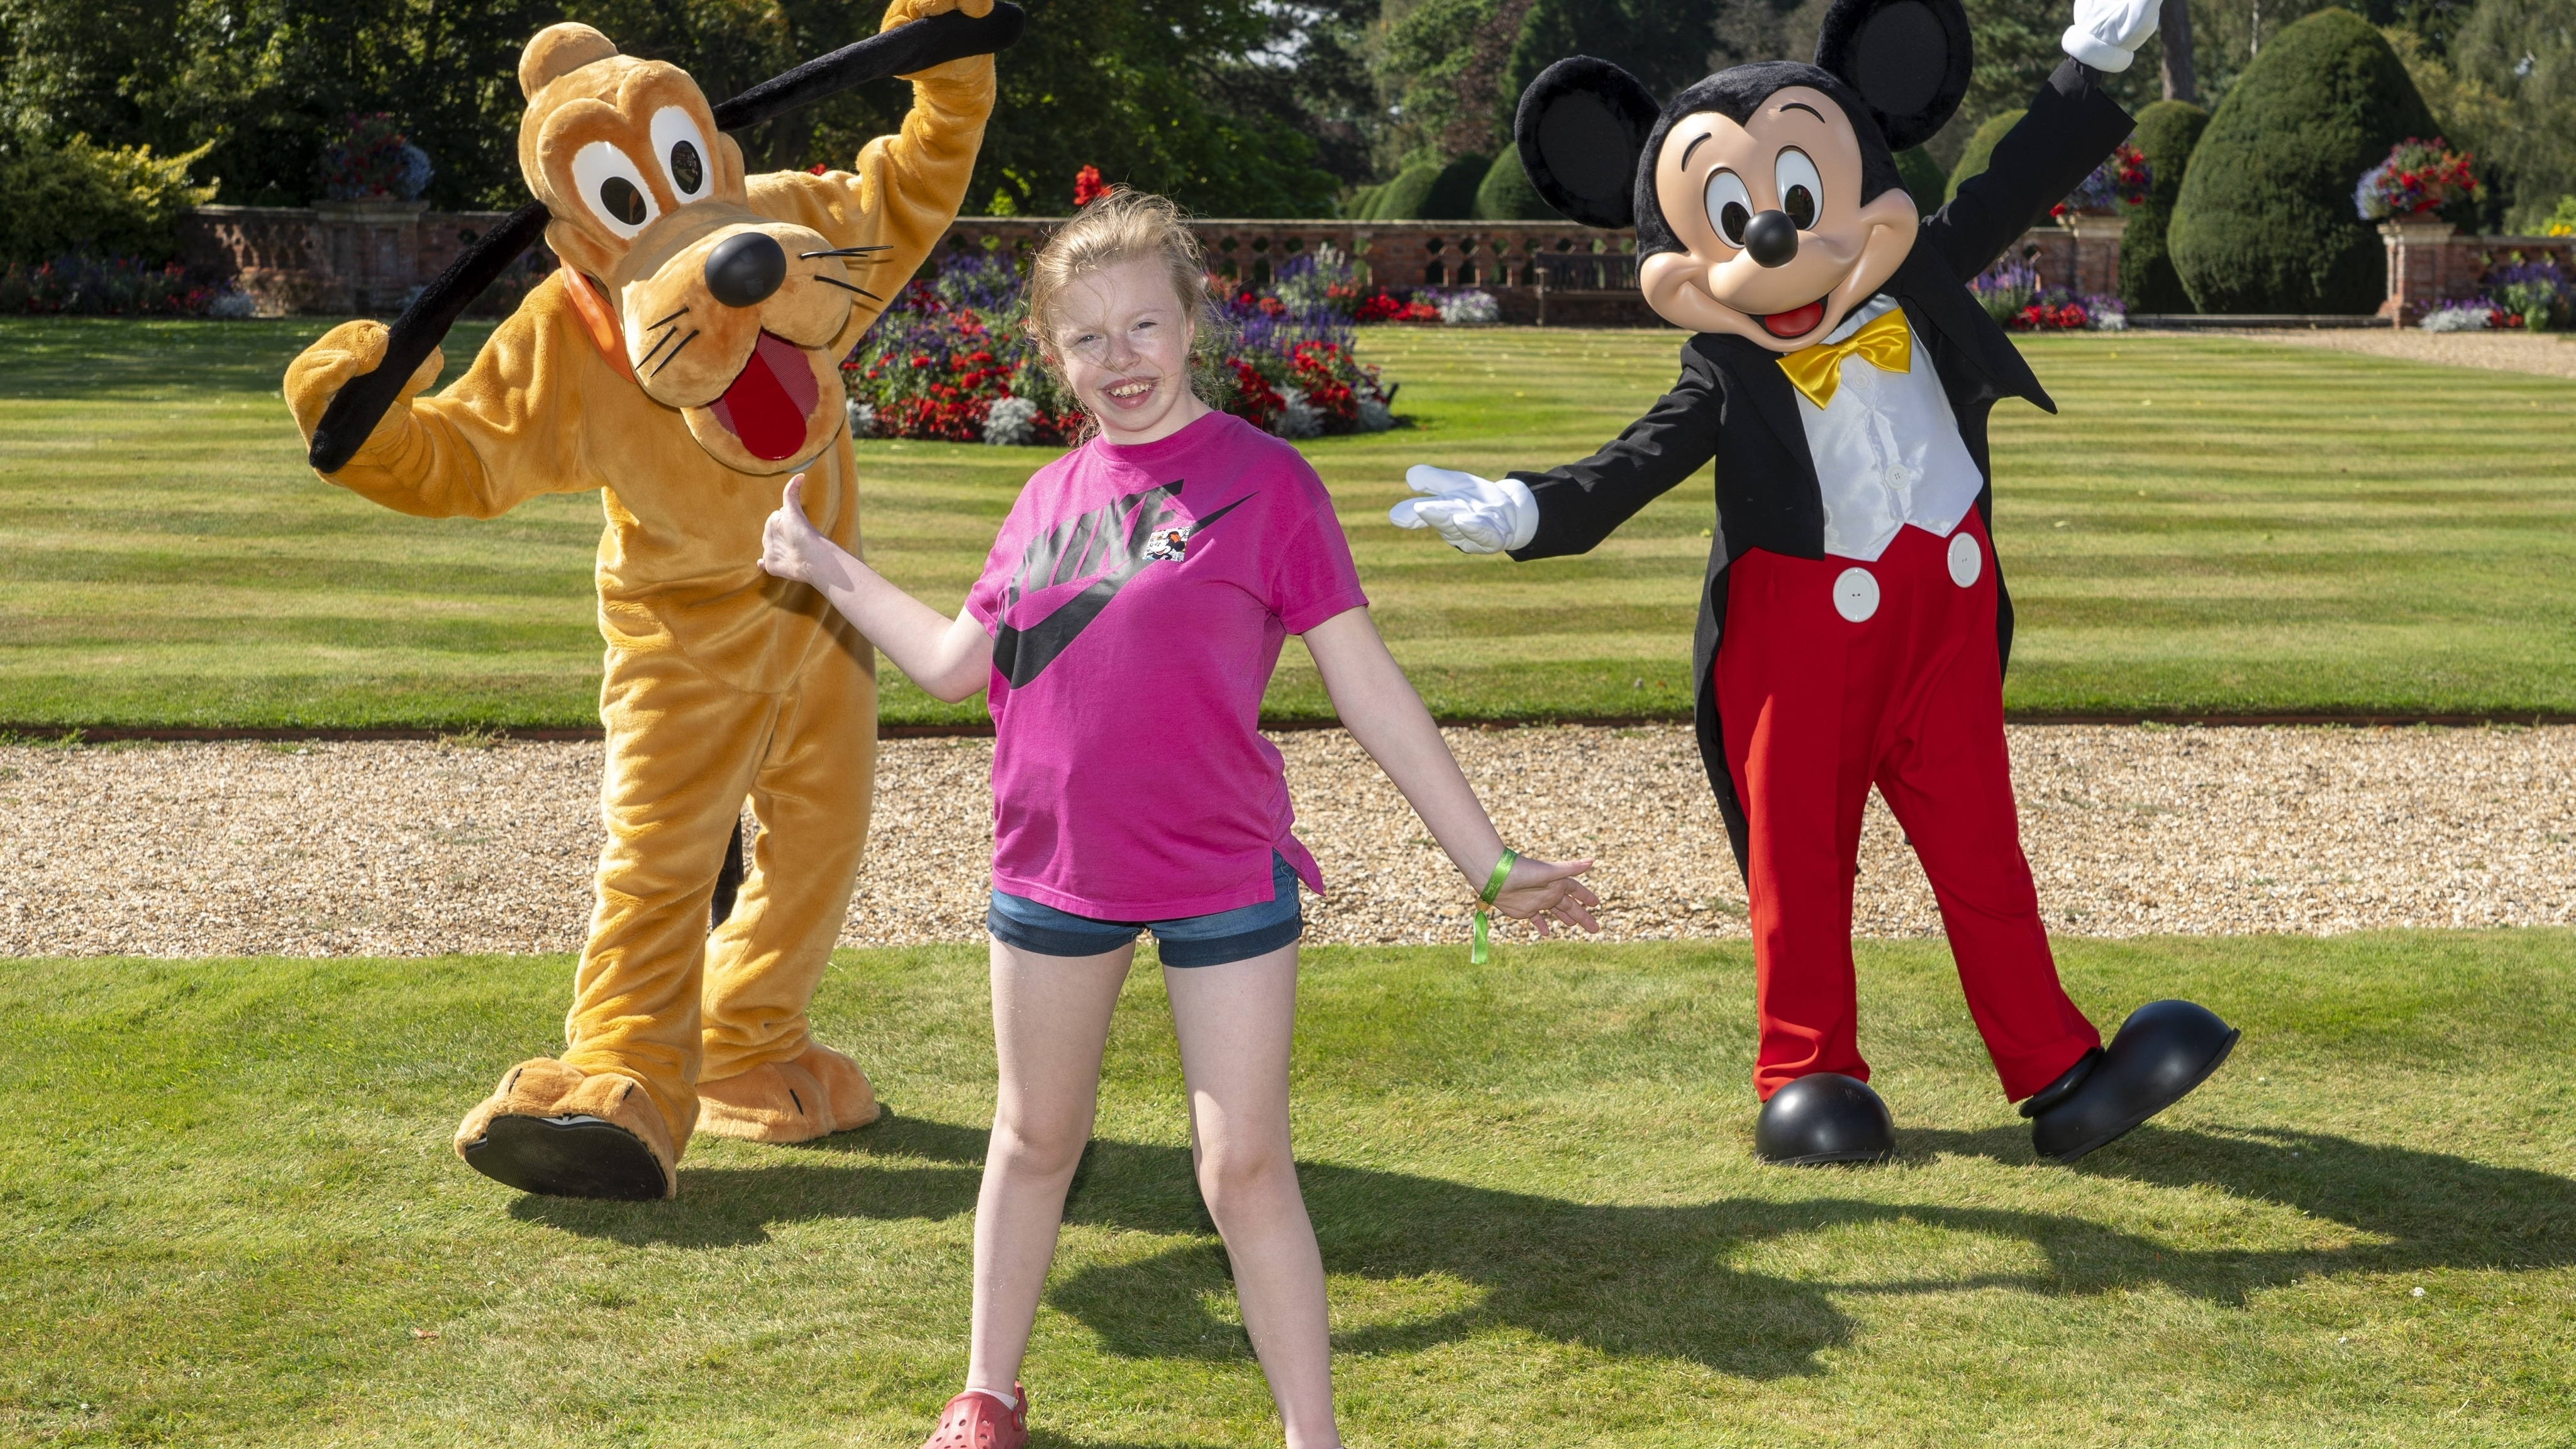 Girl posing with Mickey and Pluto